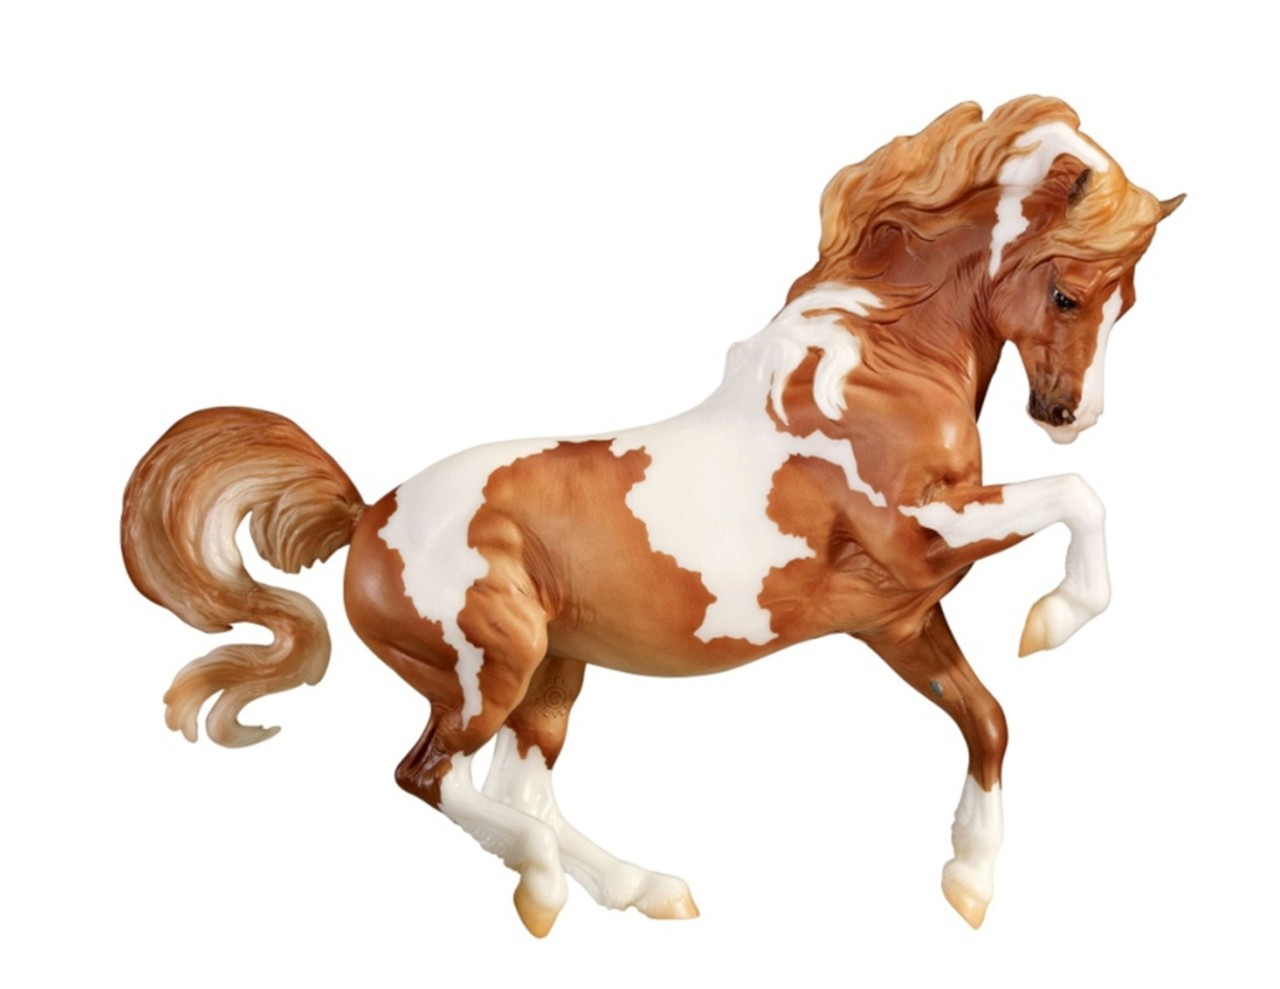 Breyer Traditional Horse #760244 Beachcomber - 2017 Flagship Dealer Special Edition - New Factory Sealed!